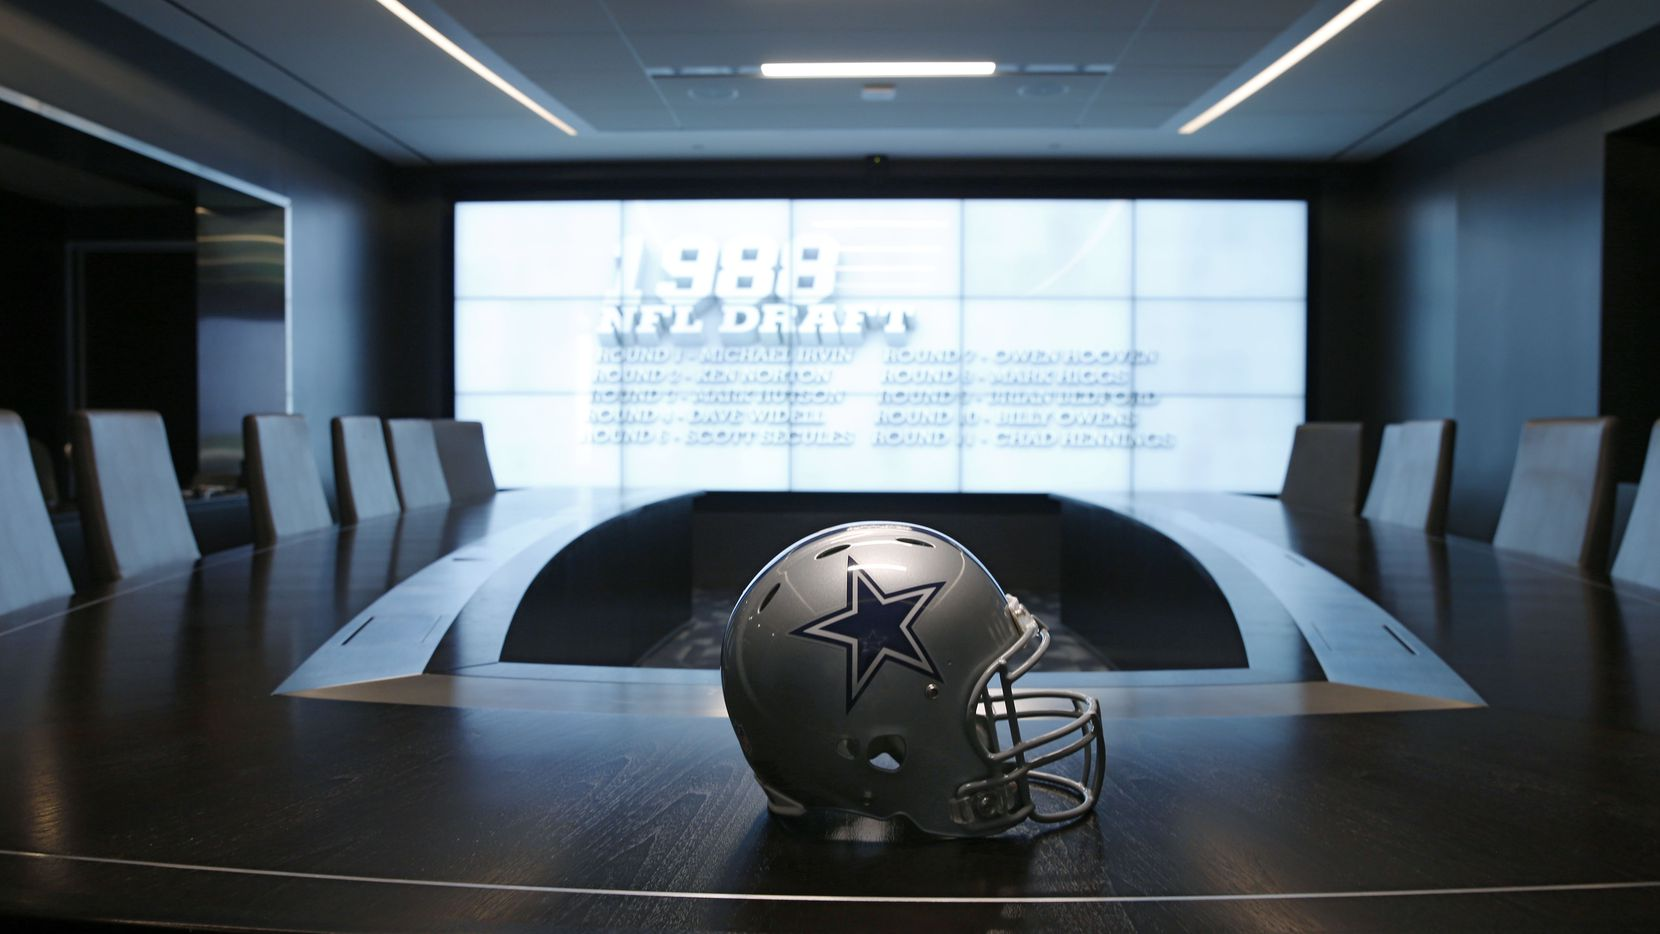 Dallas Cowboys war room at the Dallas Cowboys headquarters at The Star in Frisco on Tuesday July 17, 2018.